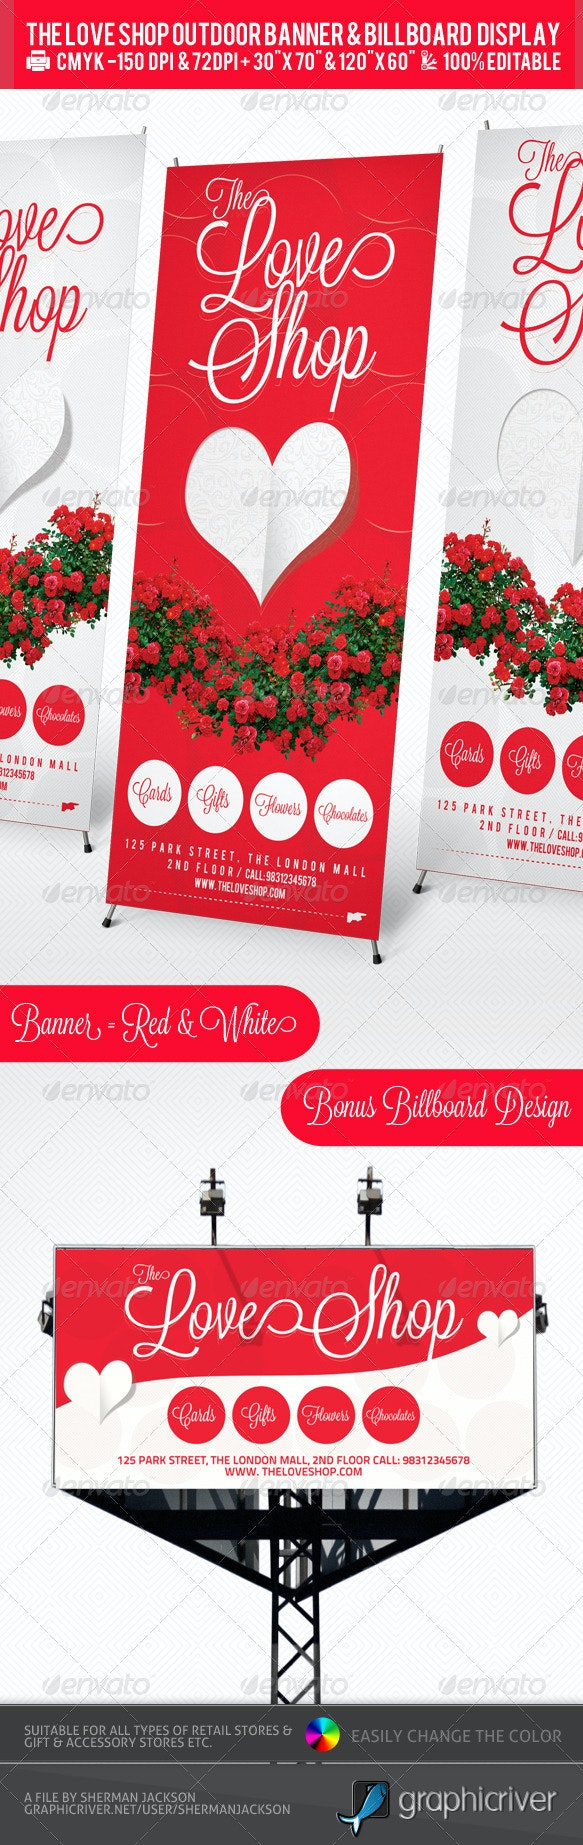 Gift Store Outdoor Banner & Billboard Design PSD - Signage Print Templates